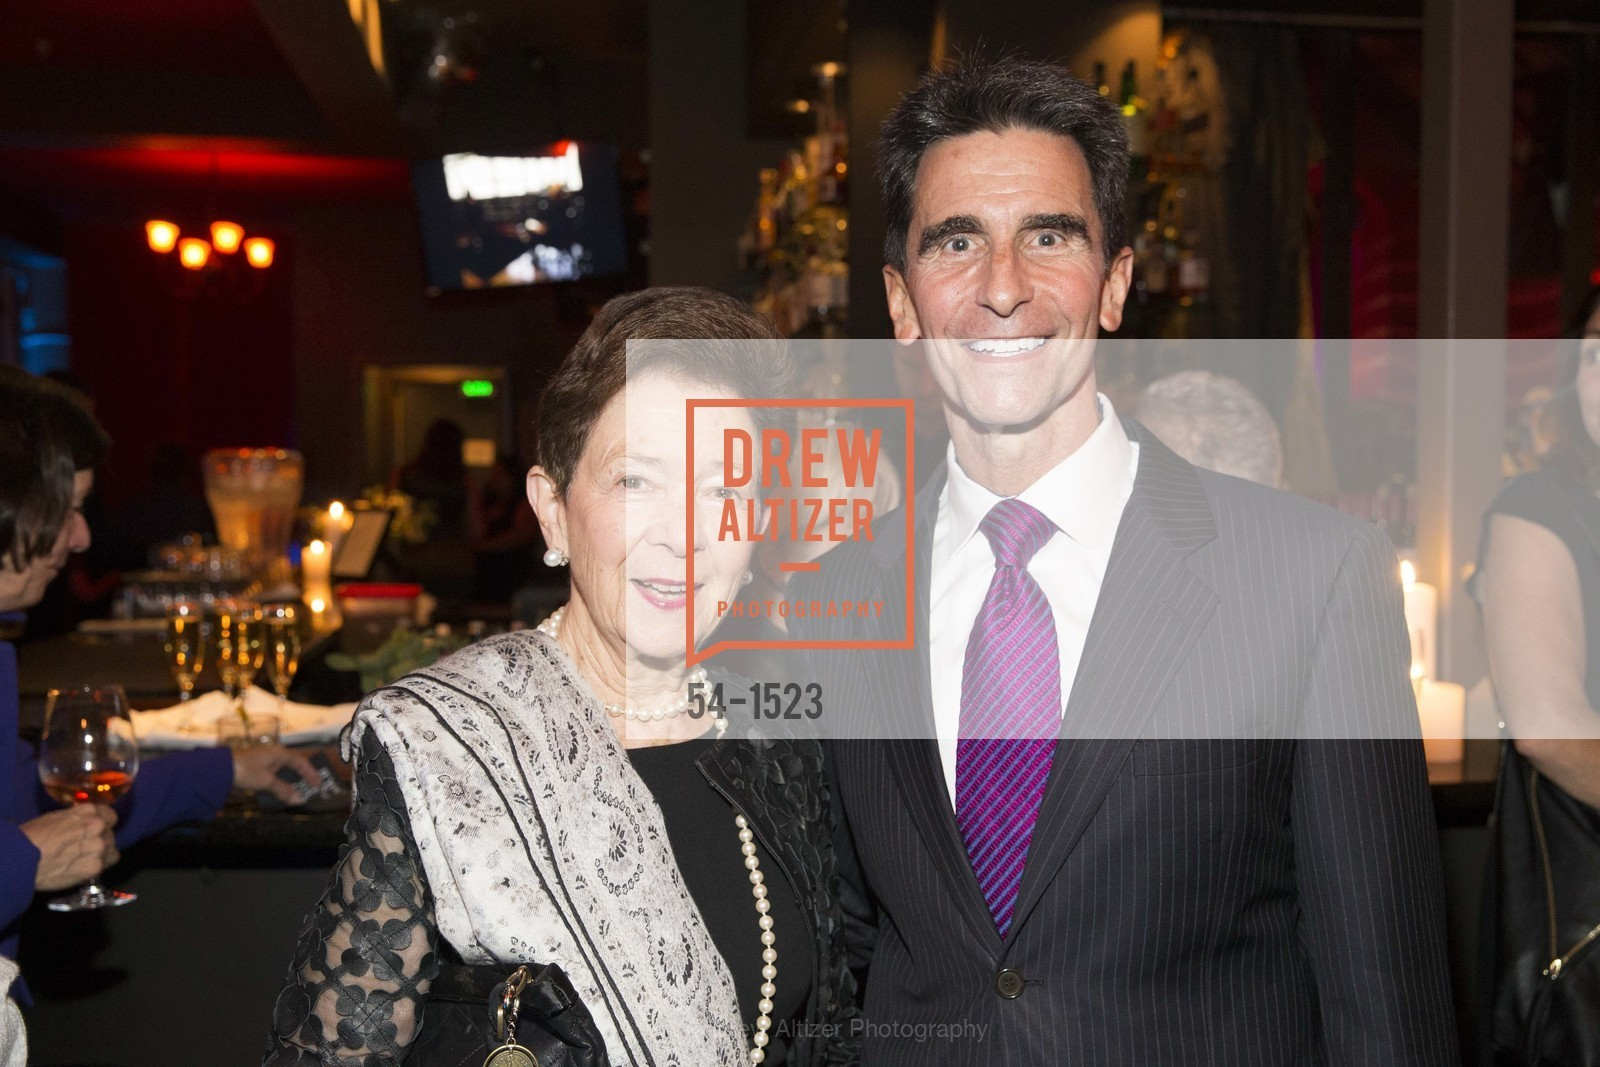 Roselyn Swig, Mark Leno, Photo #54-1523